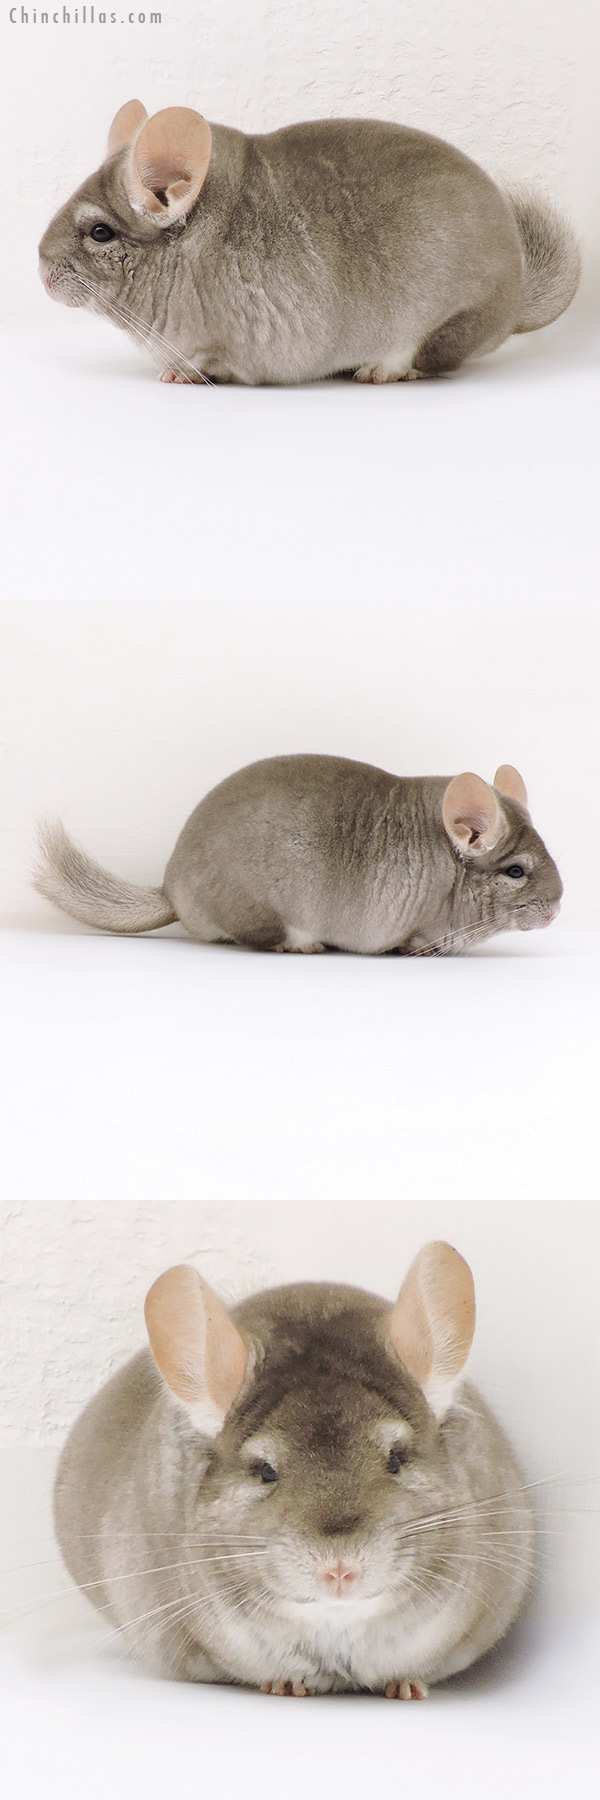 17193 Large Blocky Premium Production Quality Beige Female Chinchilla